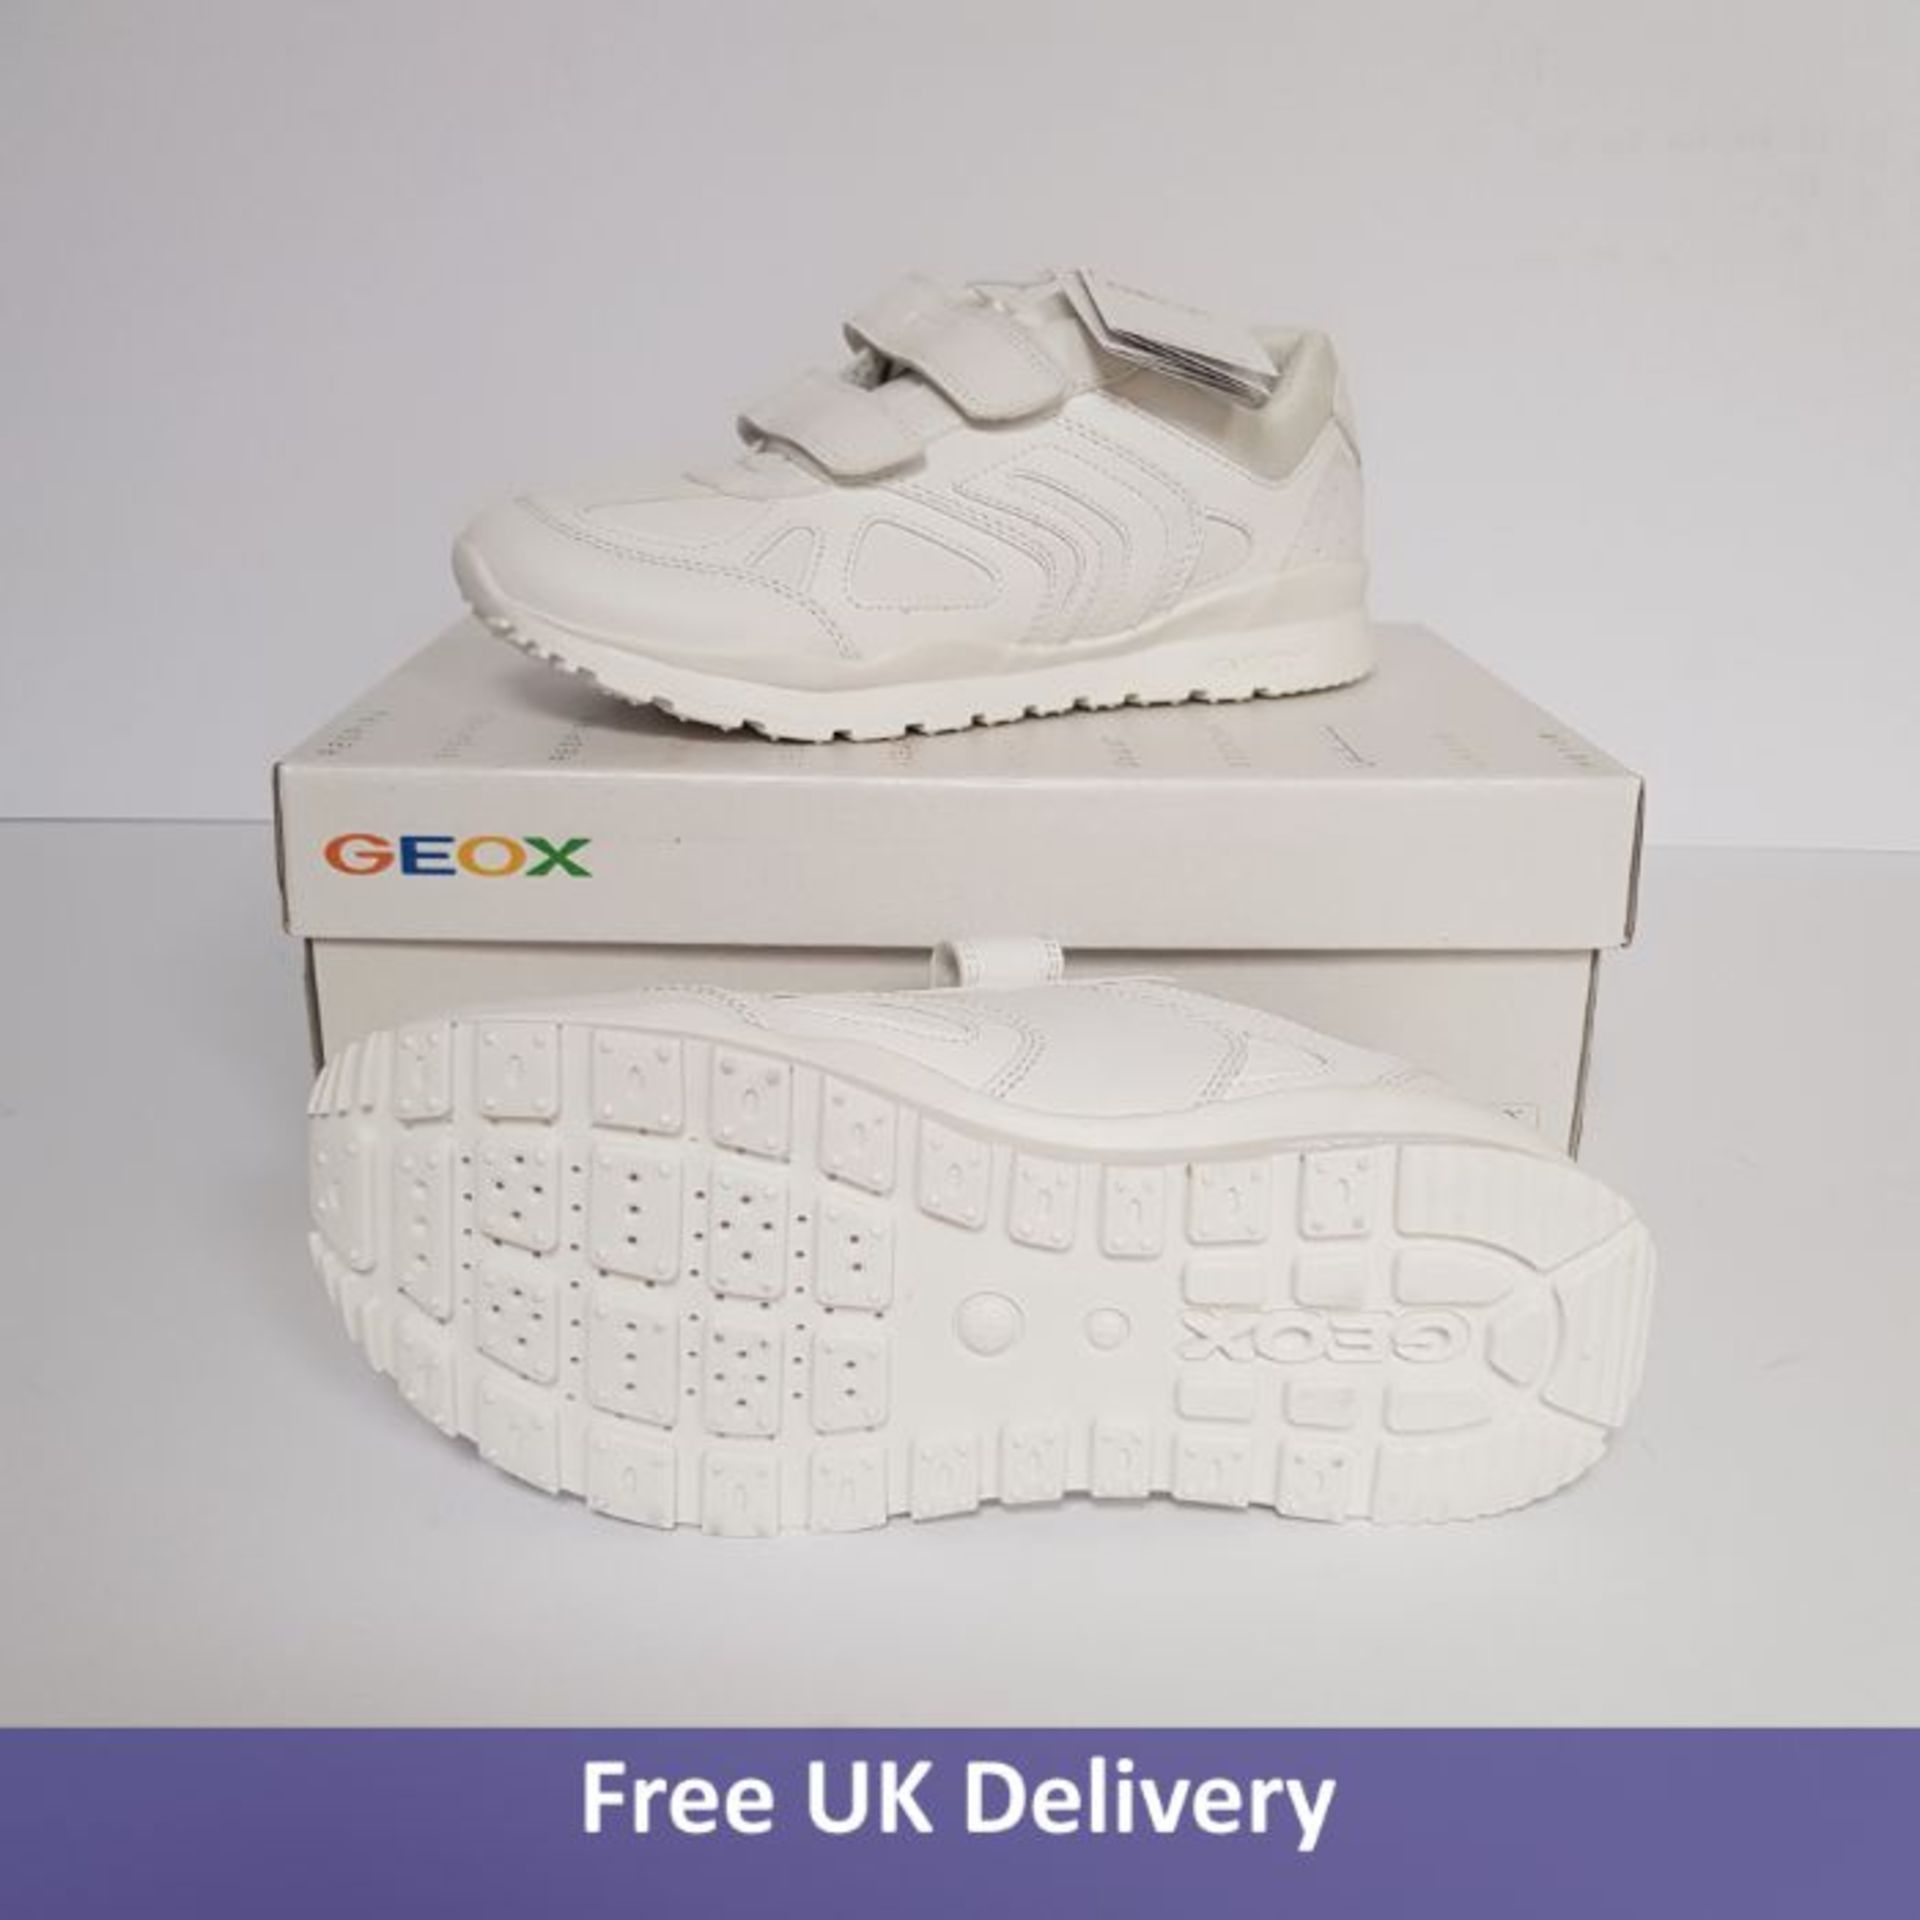 Three Pairs of Toddler's Trainers, various sizes - Image 3 of 3